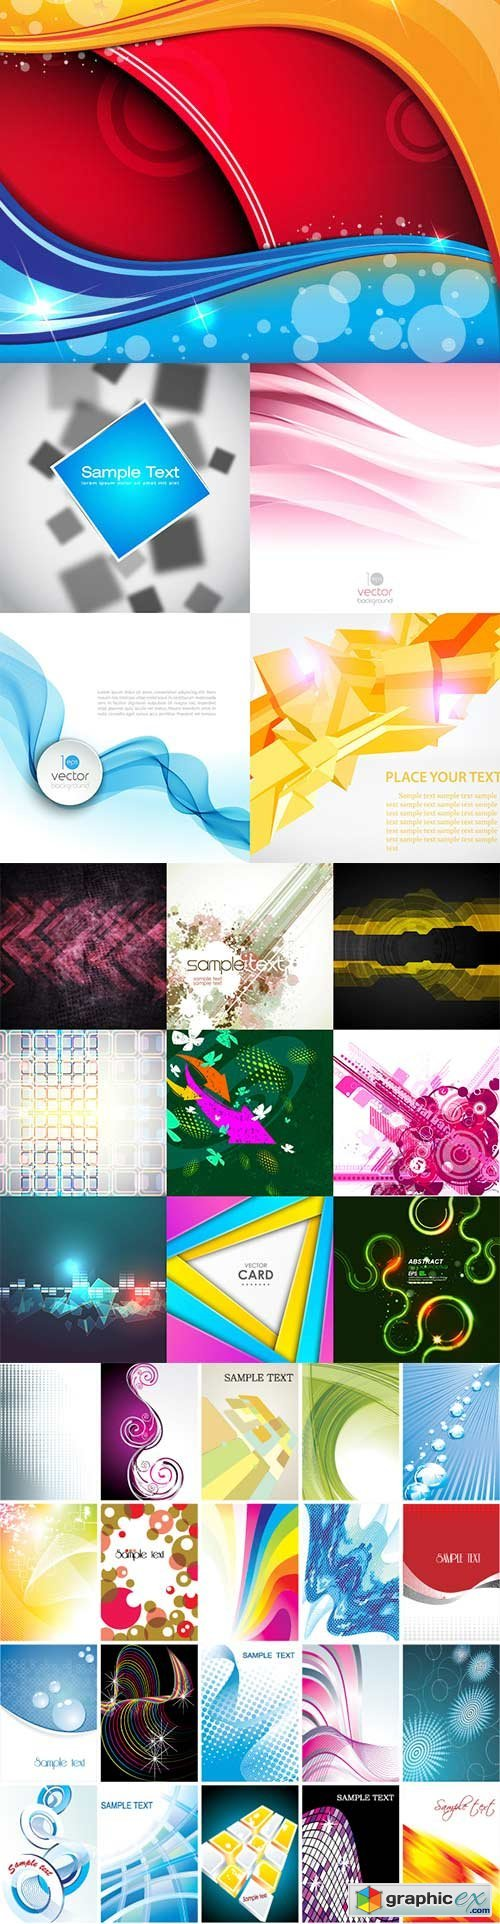 Bright colorful abstract backgrounds vector -48